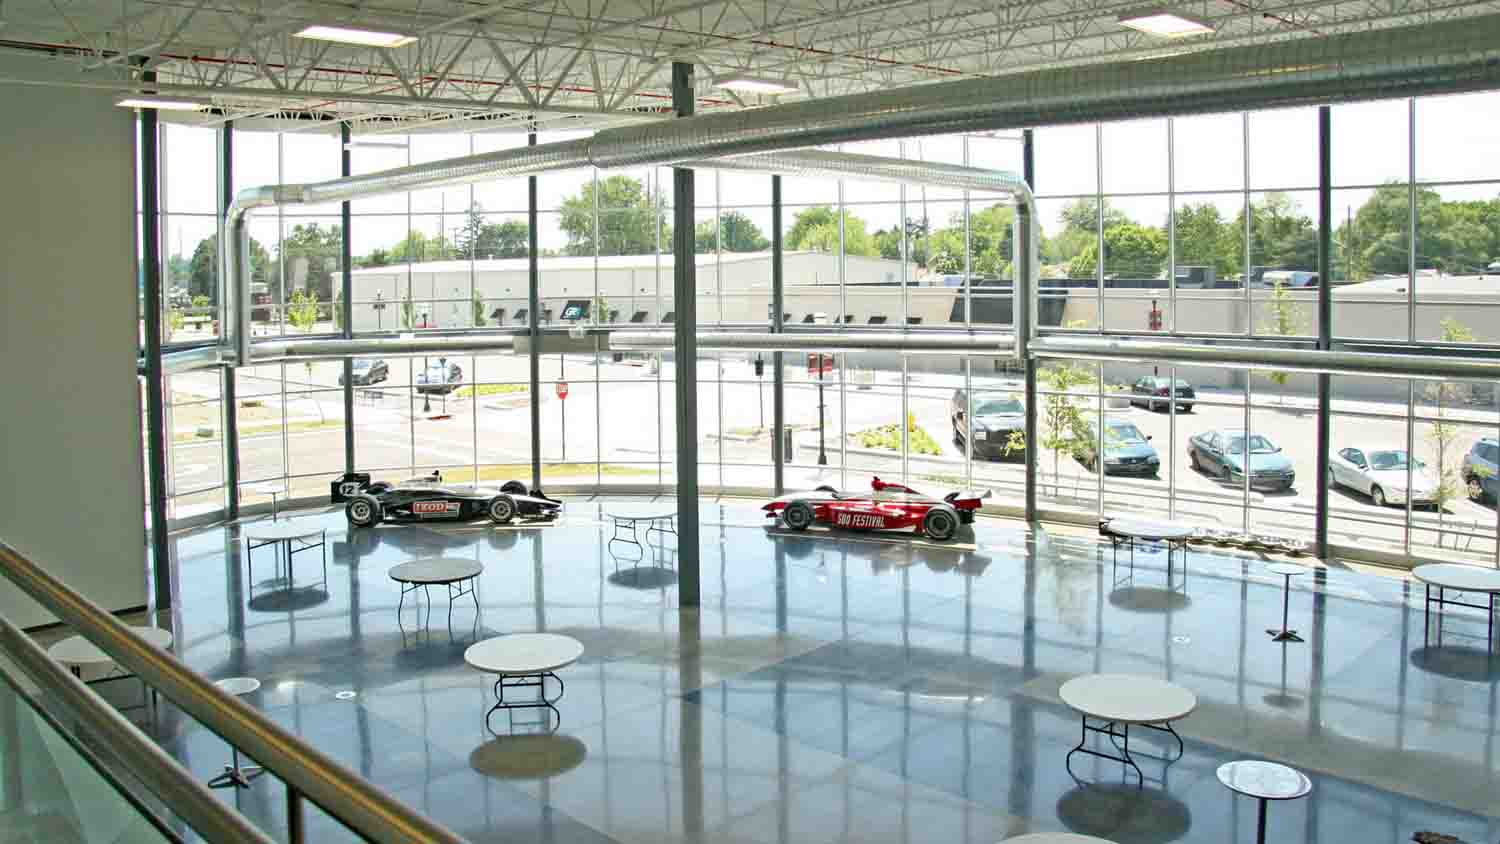 Dallara indycar factory 3